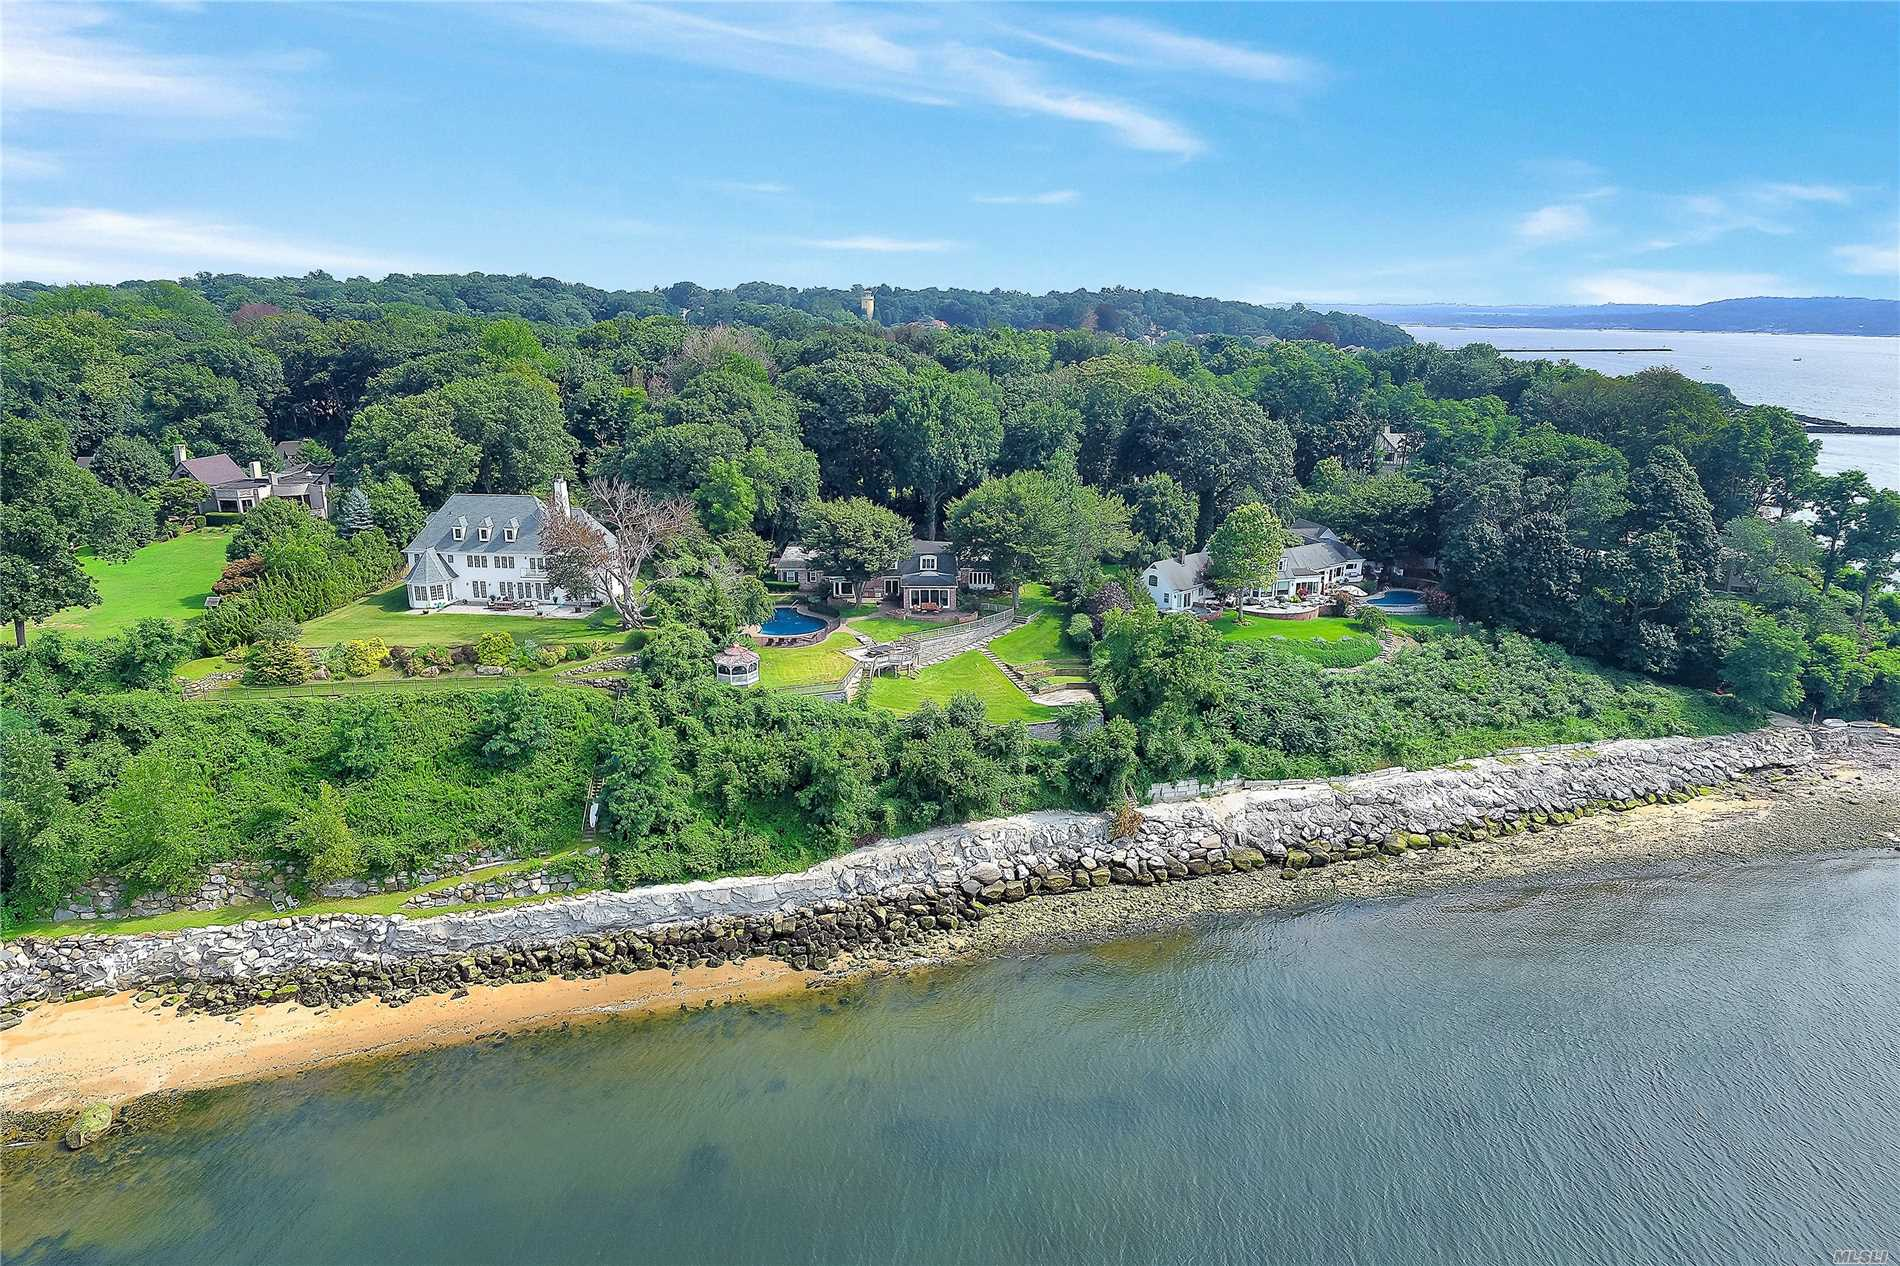 Glen Cove. Incredible Waterfront Getaway Situated On Over An Acre Of Land (Property Includes 0.34 Acre Adjacent Lot), This Serene & Quiet Colonial Is Breathtaking. Featuring Sun Room With Beautiful Vistas Of The Sound, Living Room With Fireplace, Amazing Cooks Kitchen With Breakfast Area And Glass Doors To Back Patio, Master Suite On The Main With Sauna, & Guest Wing. Unimaginable Backyard For Entertaining, With Patio, In-Ground Pool, & Remarkable Water Views.